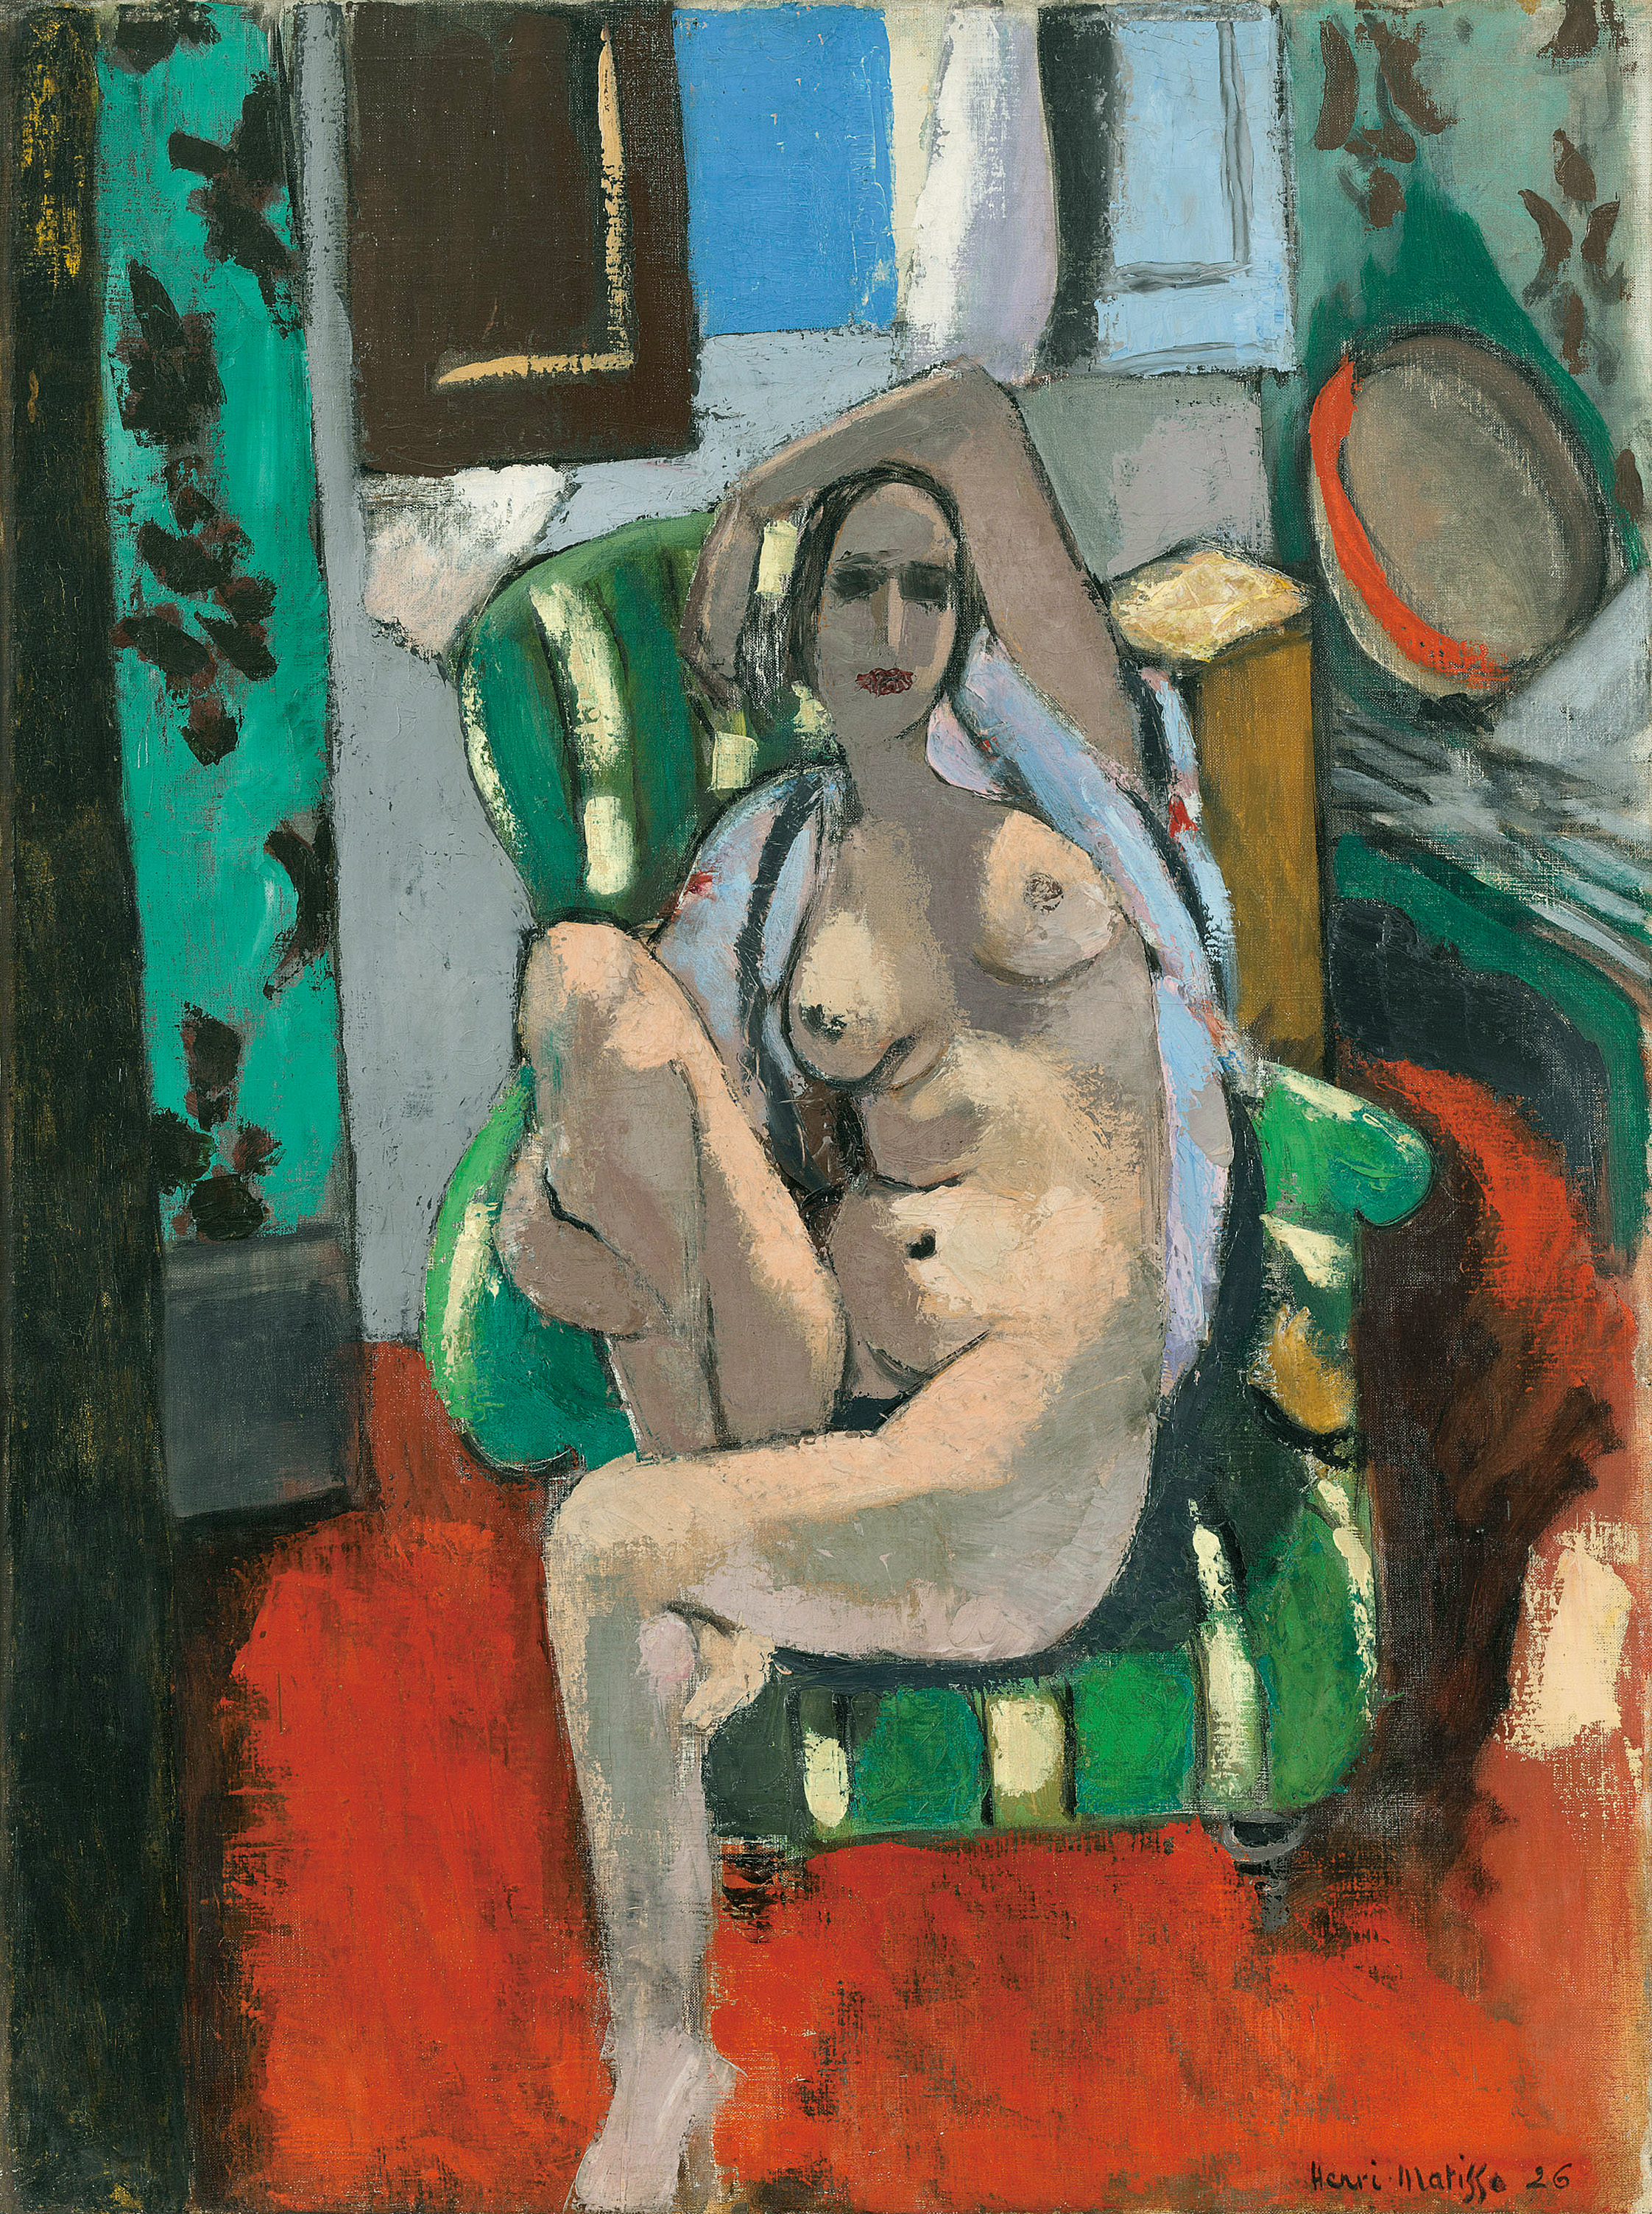 Henri Matisse (1869 – 1954). Odaliske mit einem Tamburin, 1925/26. Öl auf Leinwand, 74,3 x 55,6 cm. The Museum of Modern Art, New York/© Succession H. Matisse / VG Bild-Kunst. Bonn 2017 / Foto: 2017. Digital Image, The Museum of Modern Art, New York / Scala, Florenz